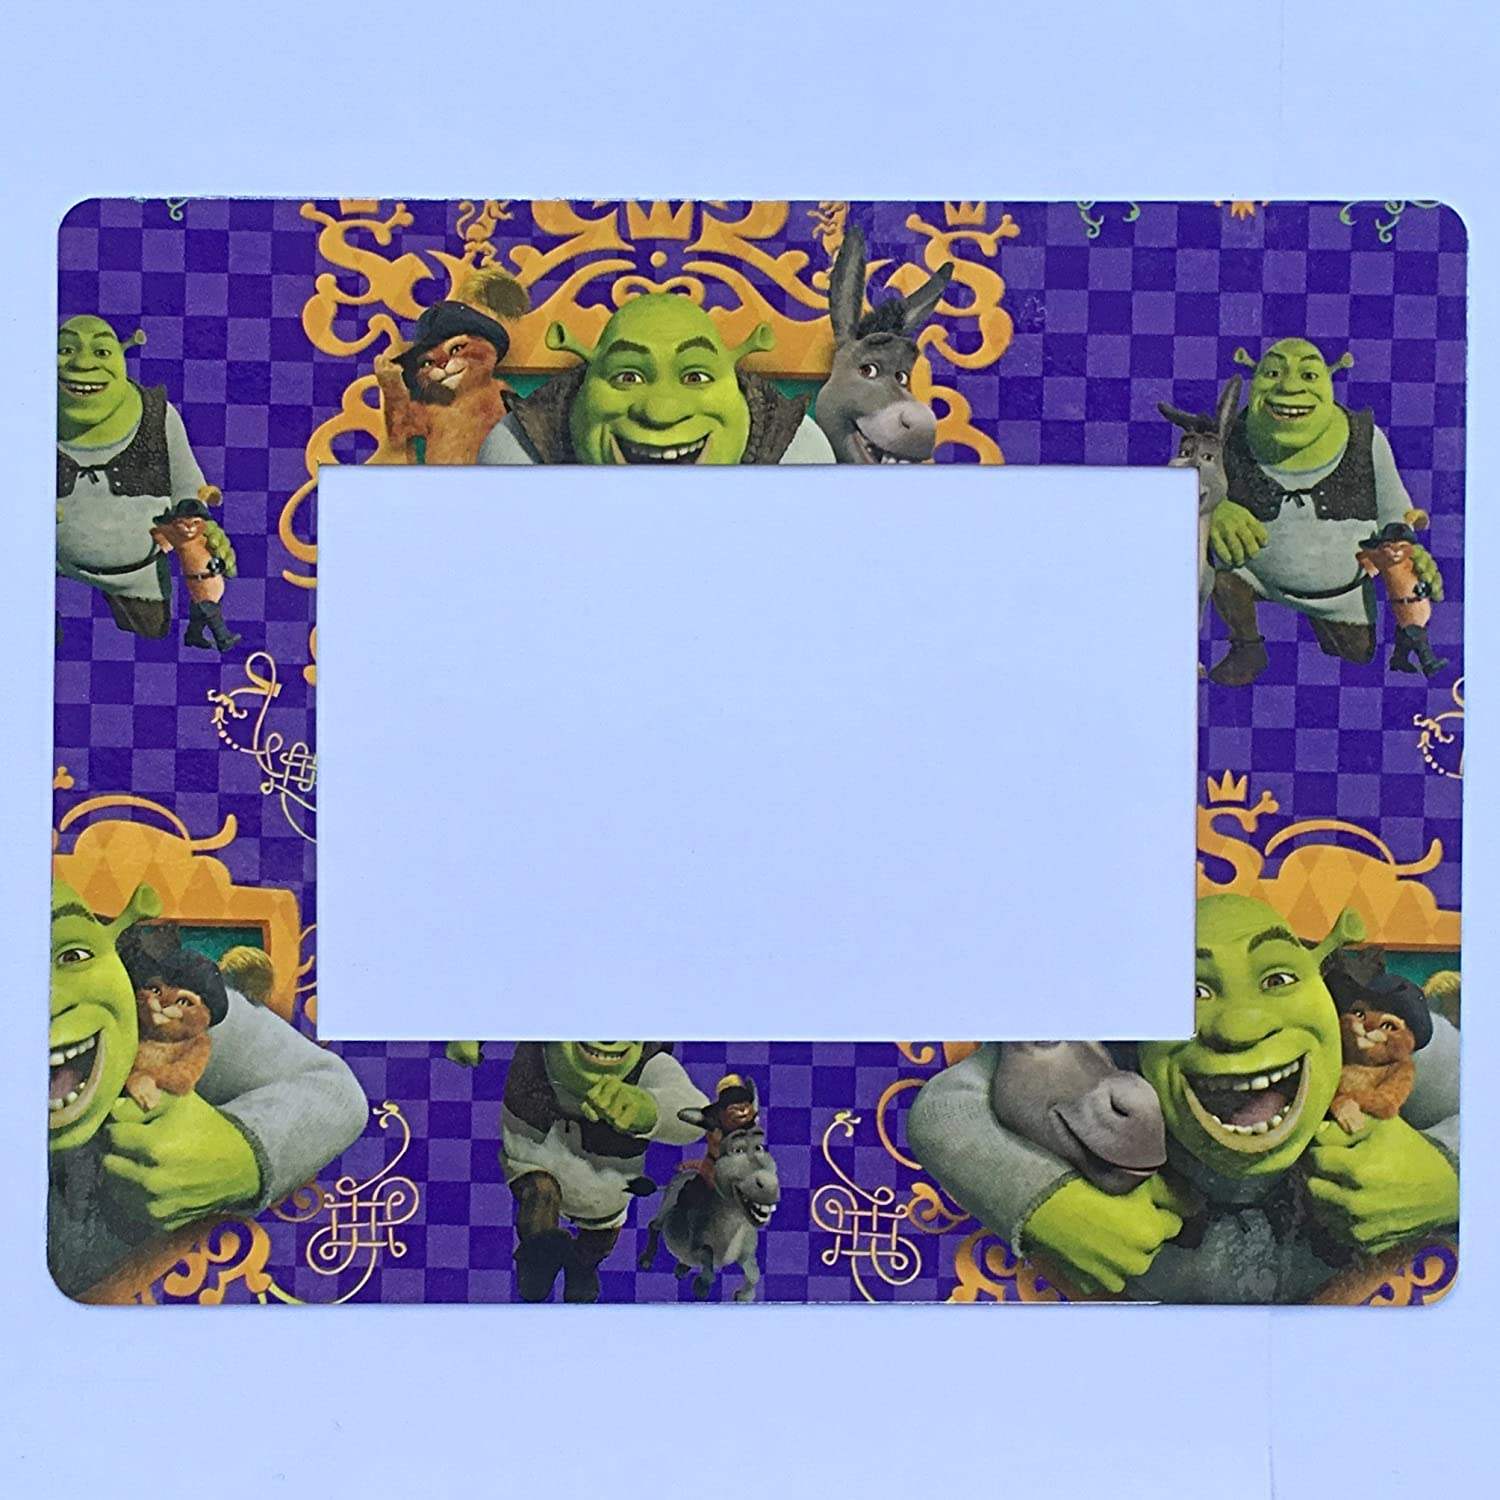 Shrek Refrigerator Magnet 4x6 Photo Magnetic Picture Frame Donkey Puss In Boot